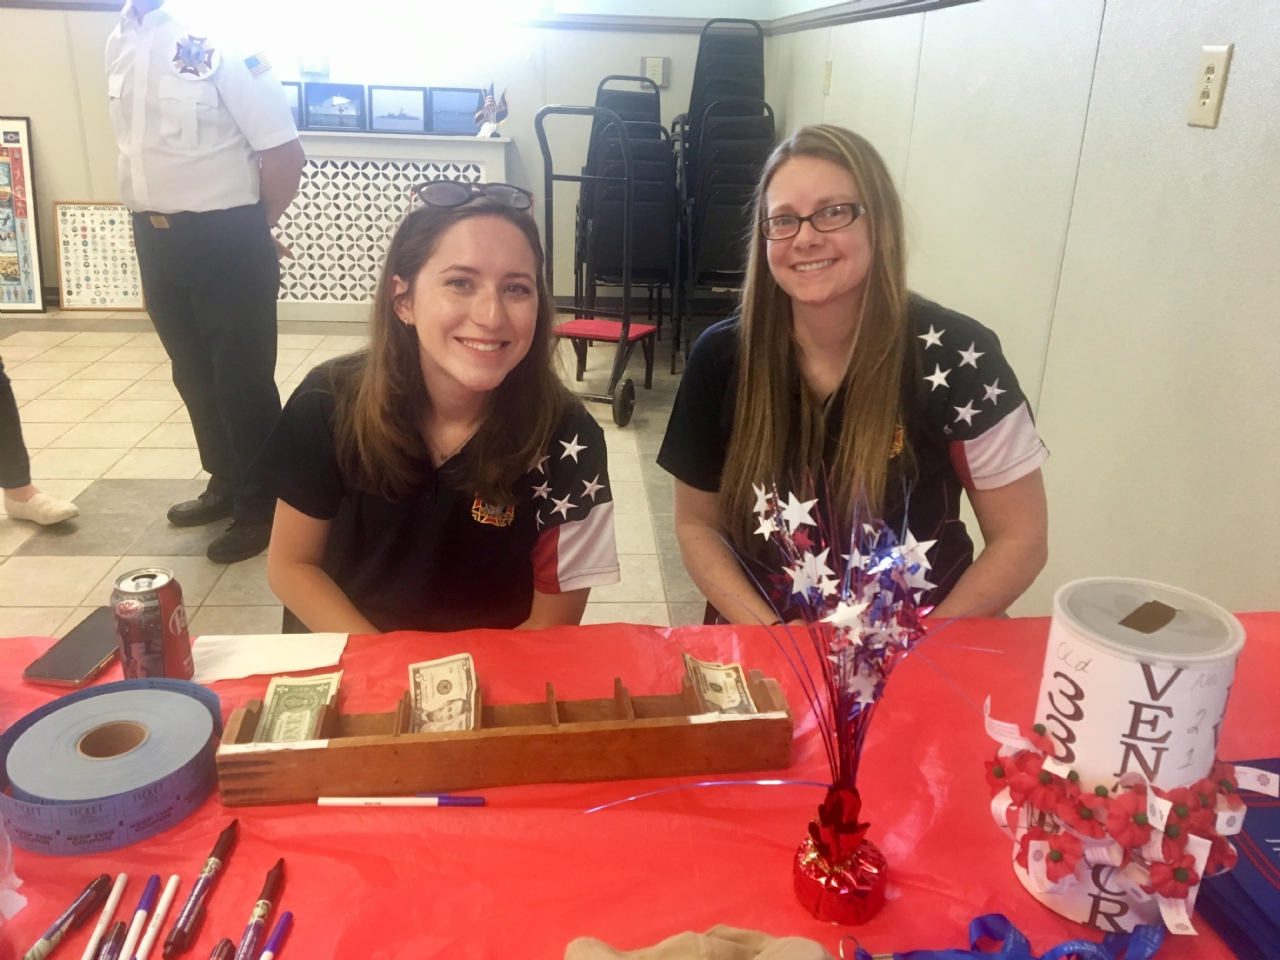 VFW Auxiliary Life Members Jennifer Wagener (R) and Rachel Shulte-Doody distribute Buddy Poppies and handle donations from a larger than usual attendance.